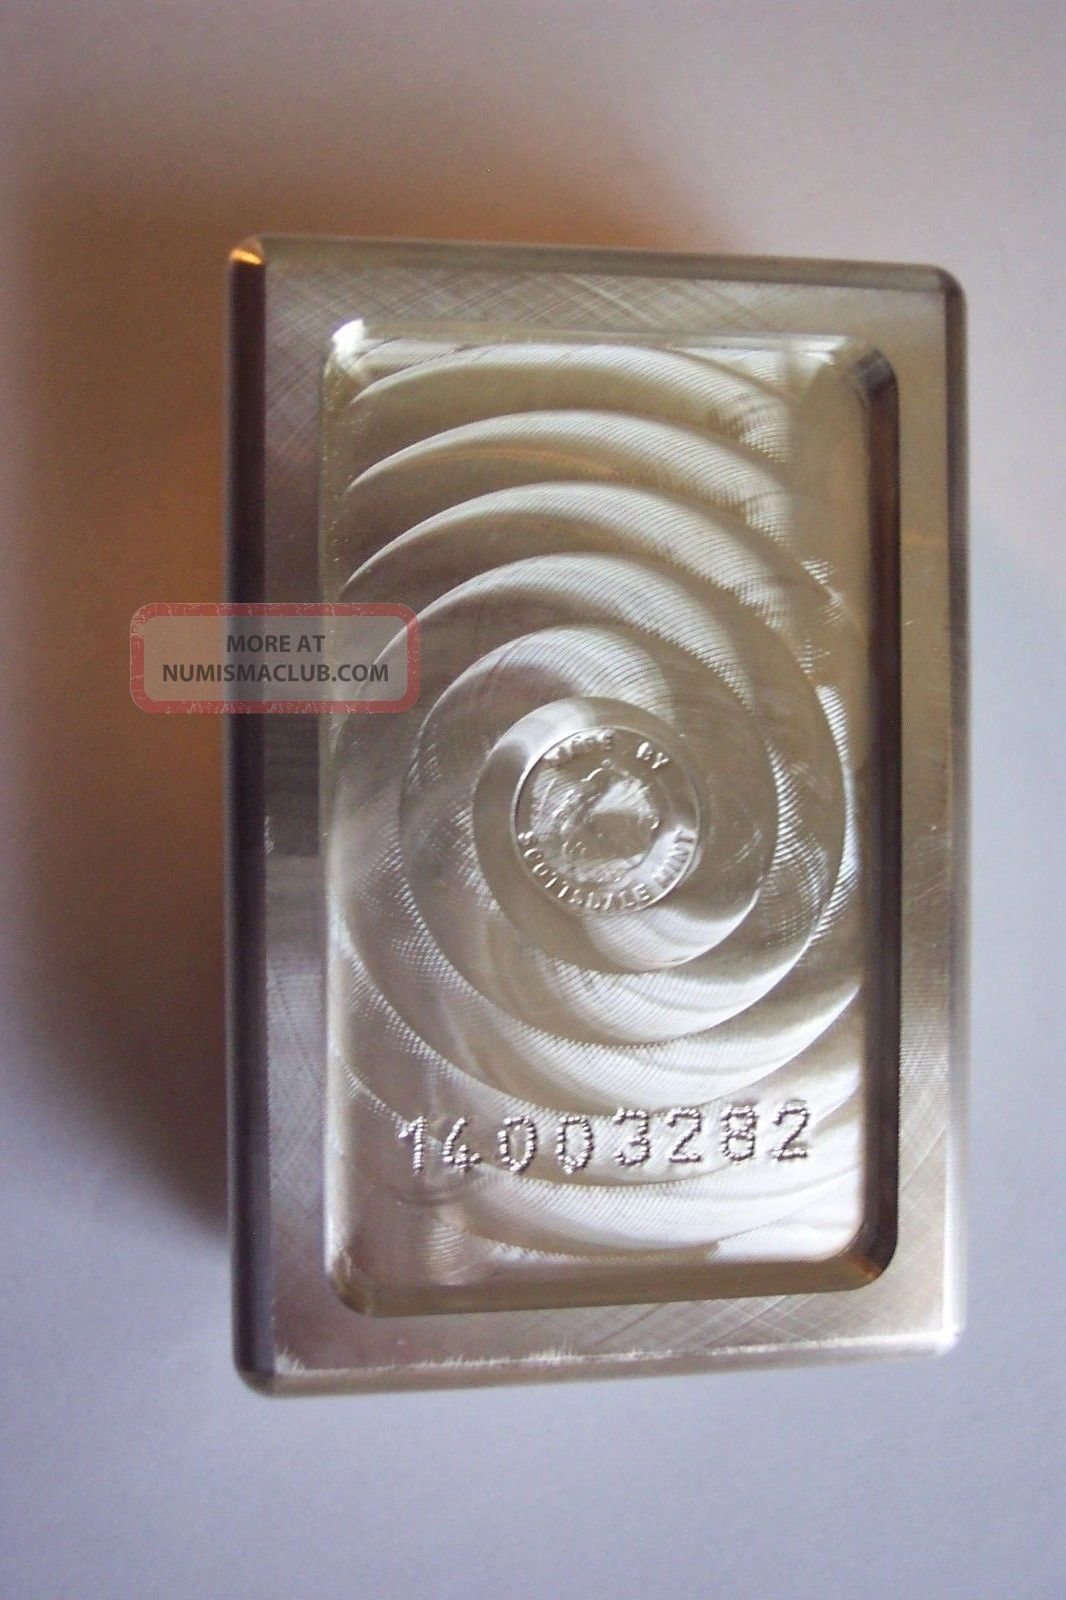 Scottsdale Silver Stacker Kilo Bar 999 Fine Silver